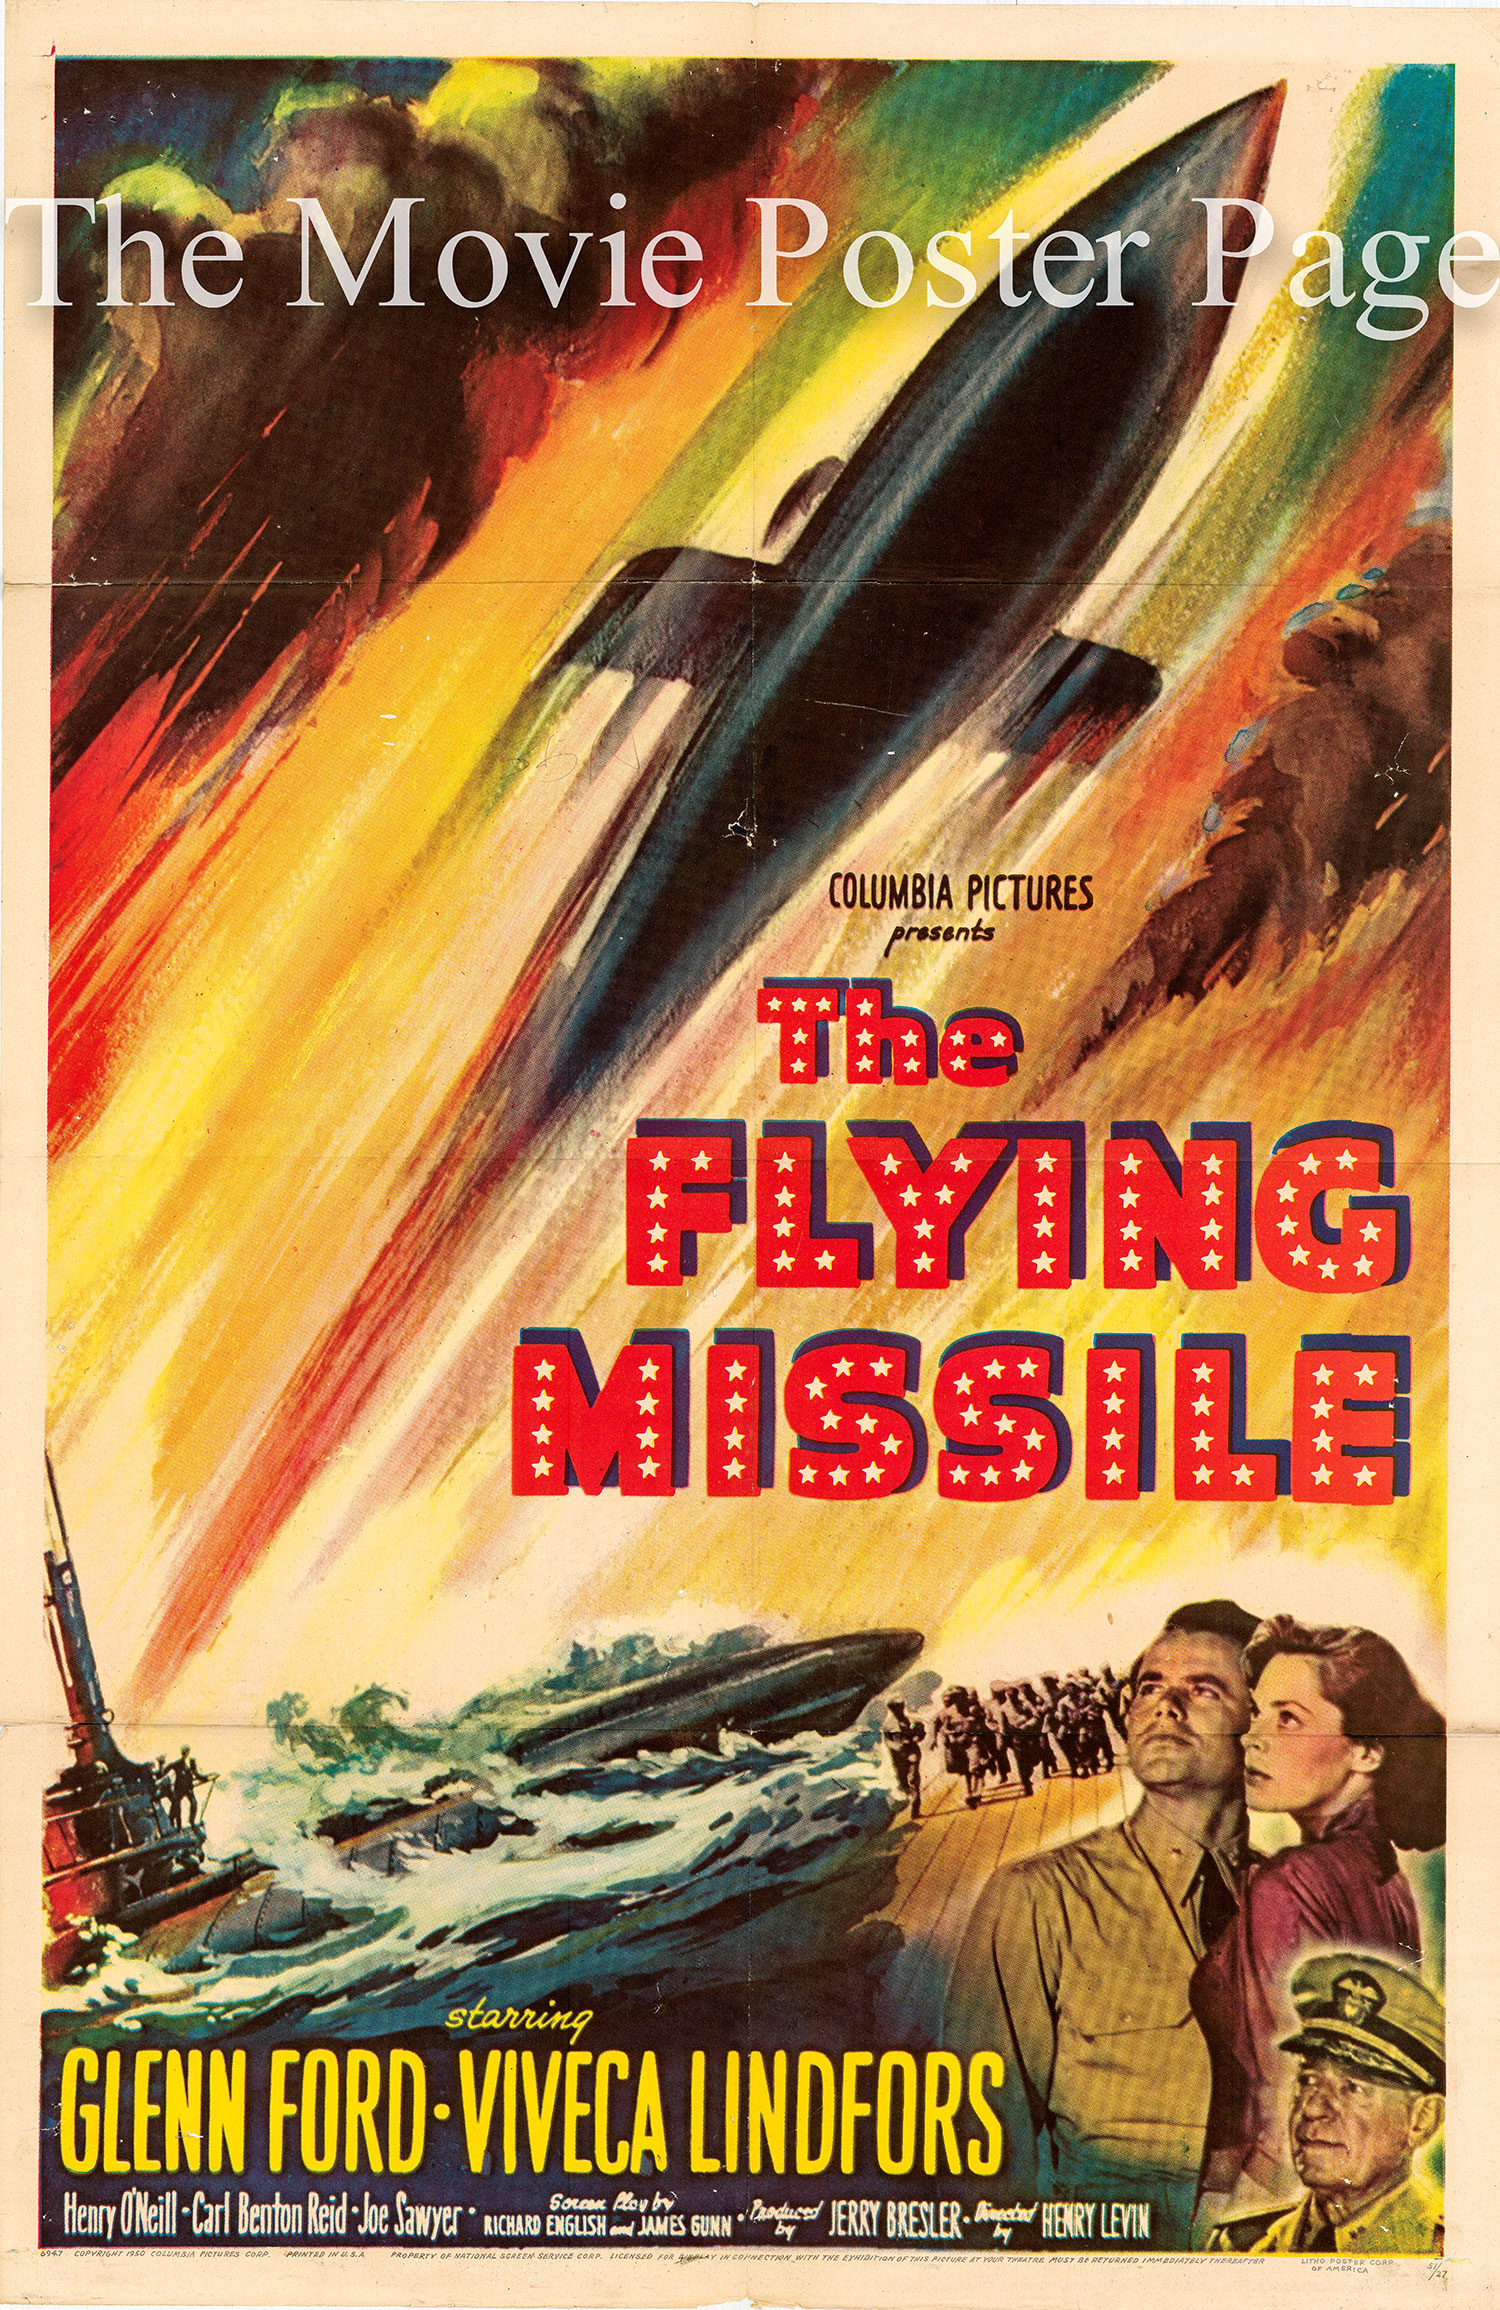 Pictured is a US one-sheet promotional poster for the 1951 Henry Levin film The Flying Missile starring Glenn Ford.